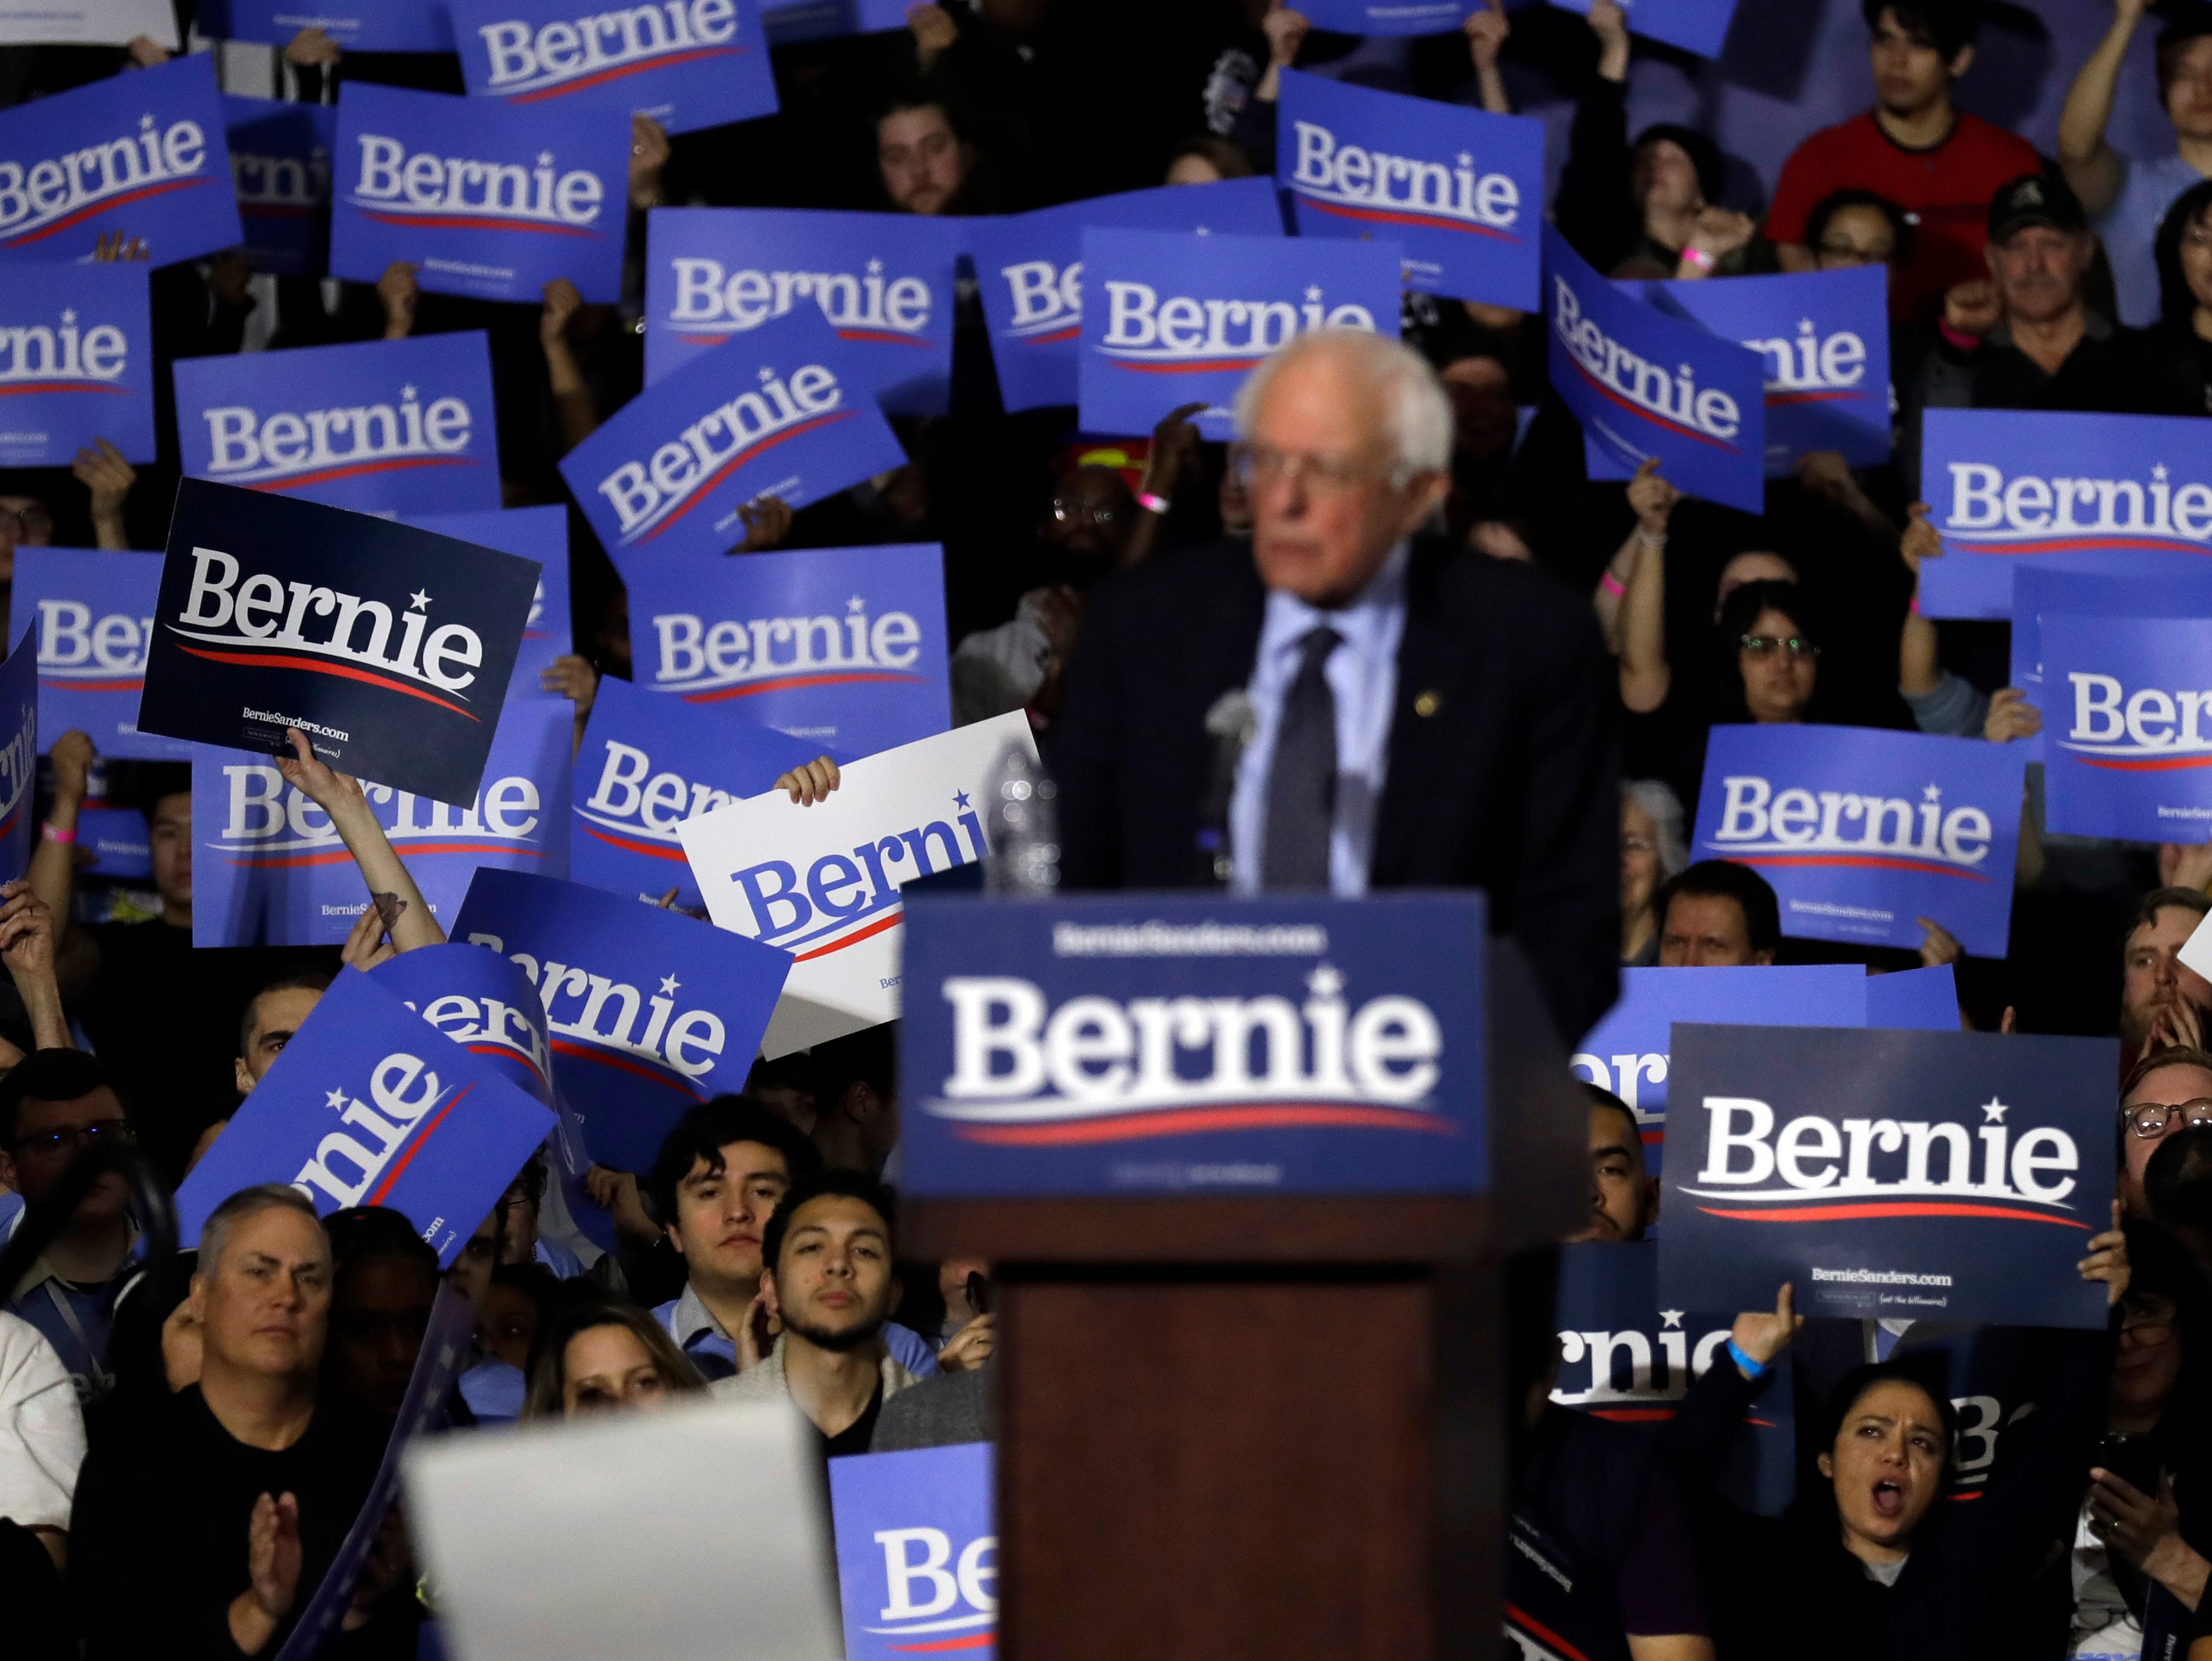 Supporters react as they listen to Sen. Bernie Sanders, I-Vt., during his 2020 presidential campaign stop at Navy Pier in Chicago, Sunday, March 3, 2019. Over the next several weeks, Sanders will travel to Iowa, New Hampshire, South Carolina, Nevada, and California. He will then return to Burlington, Vermont, for the official launch of his campaign.